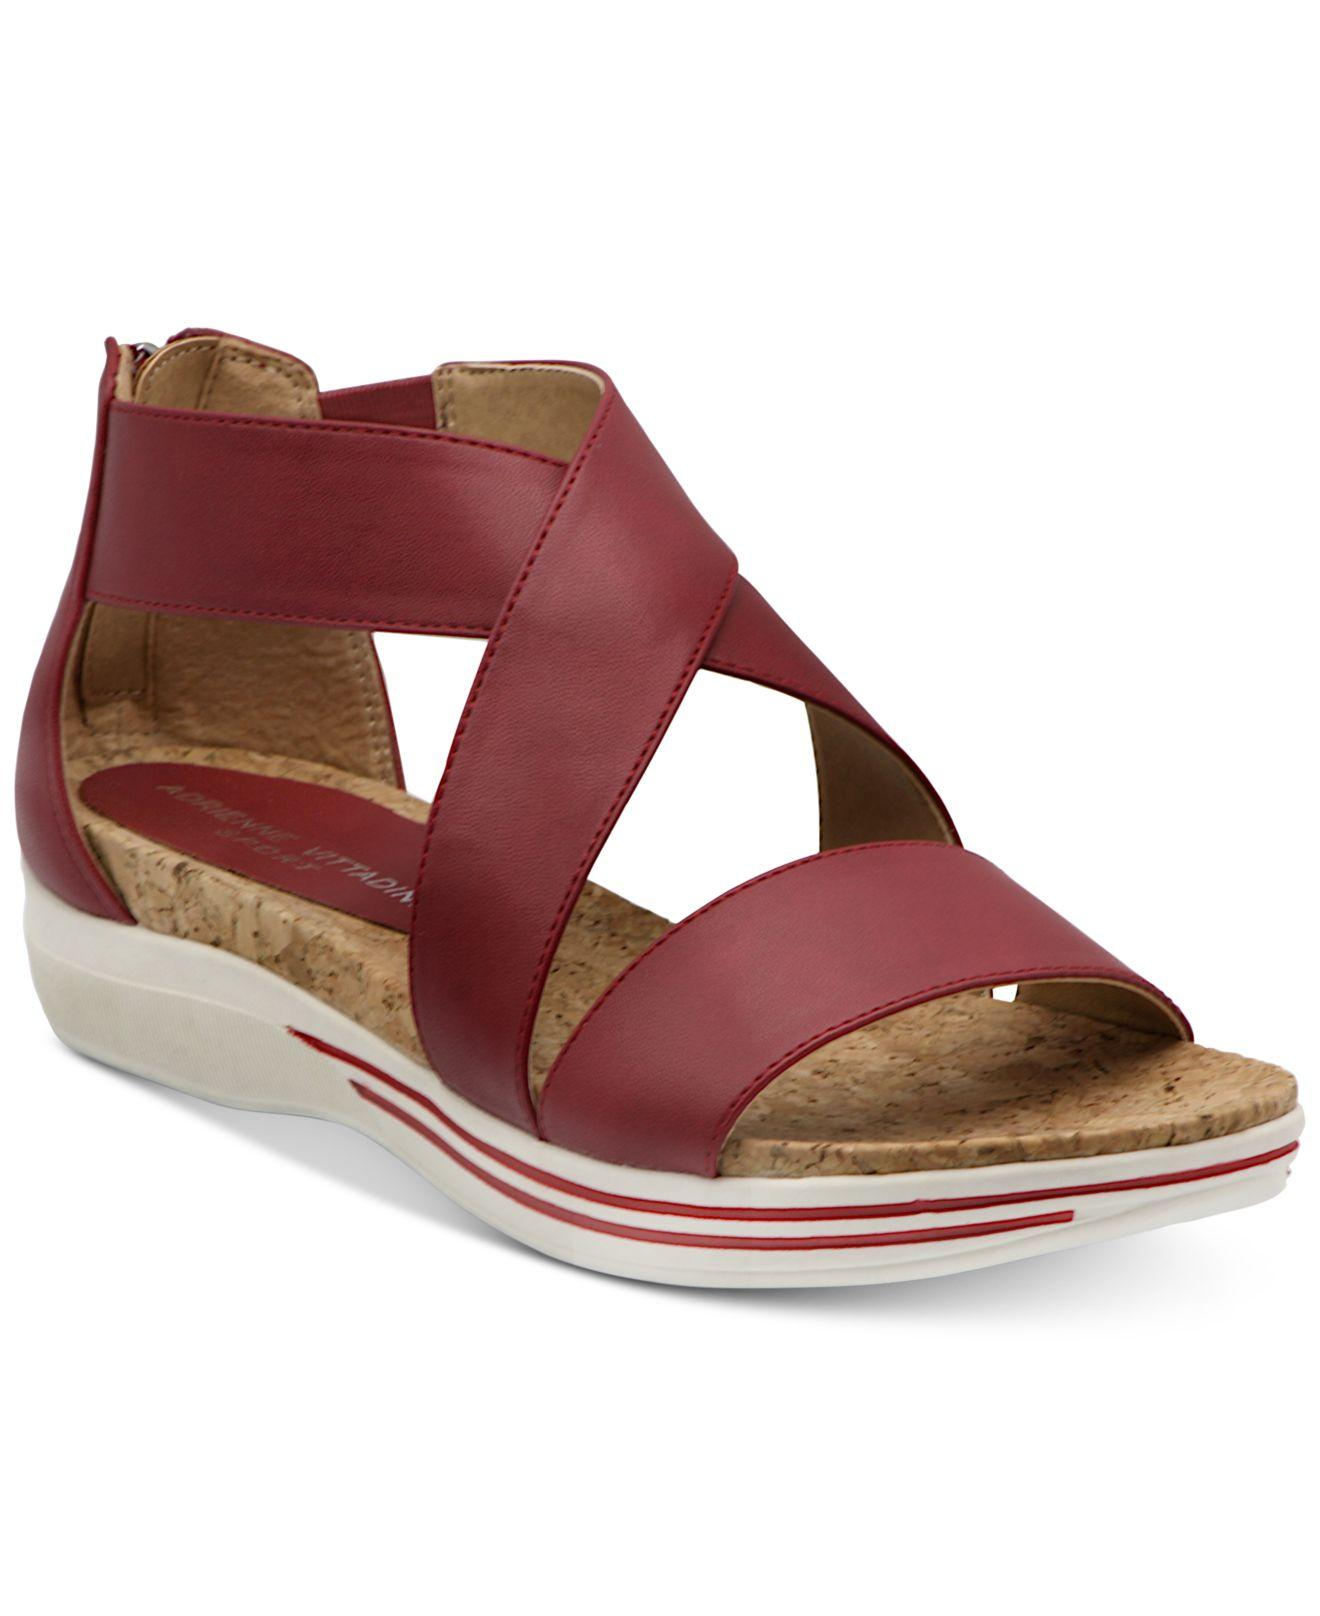 8b504137f64a Lyst - Adrienne Vittadini Cary Sport Sandals in Red